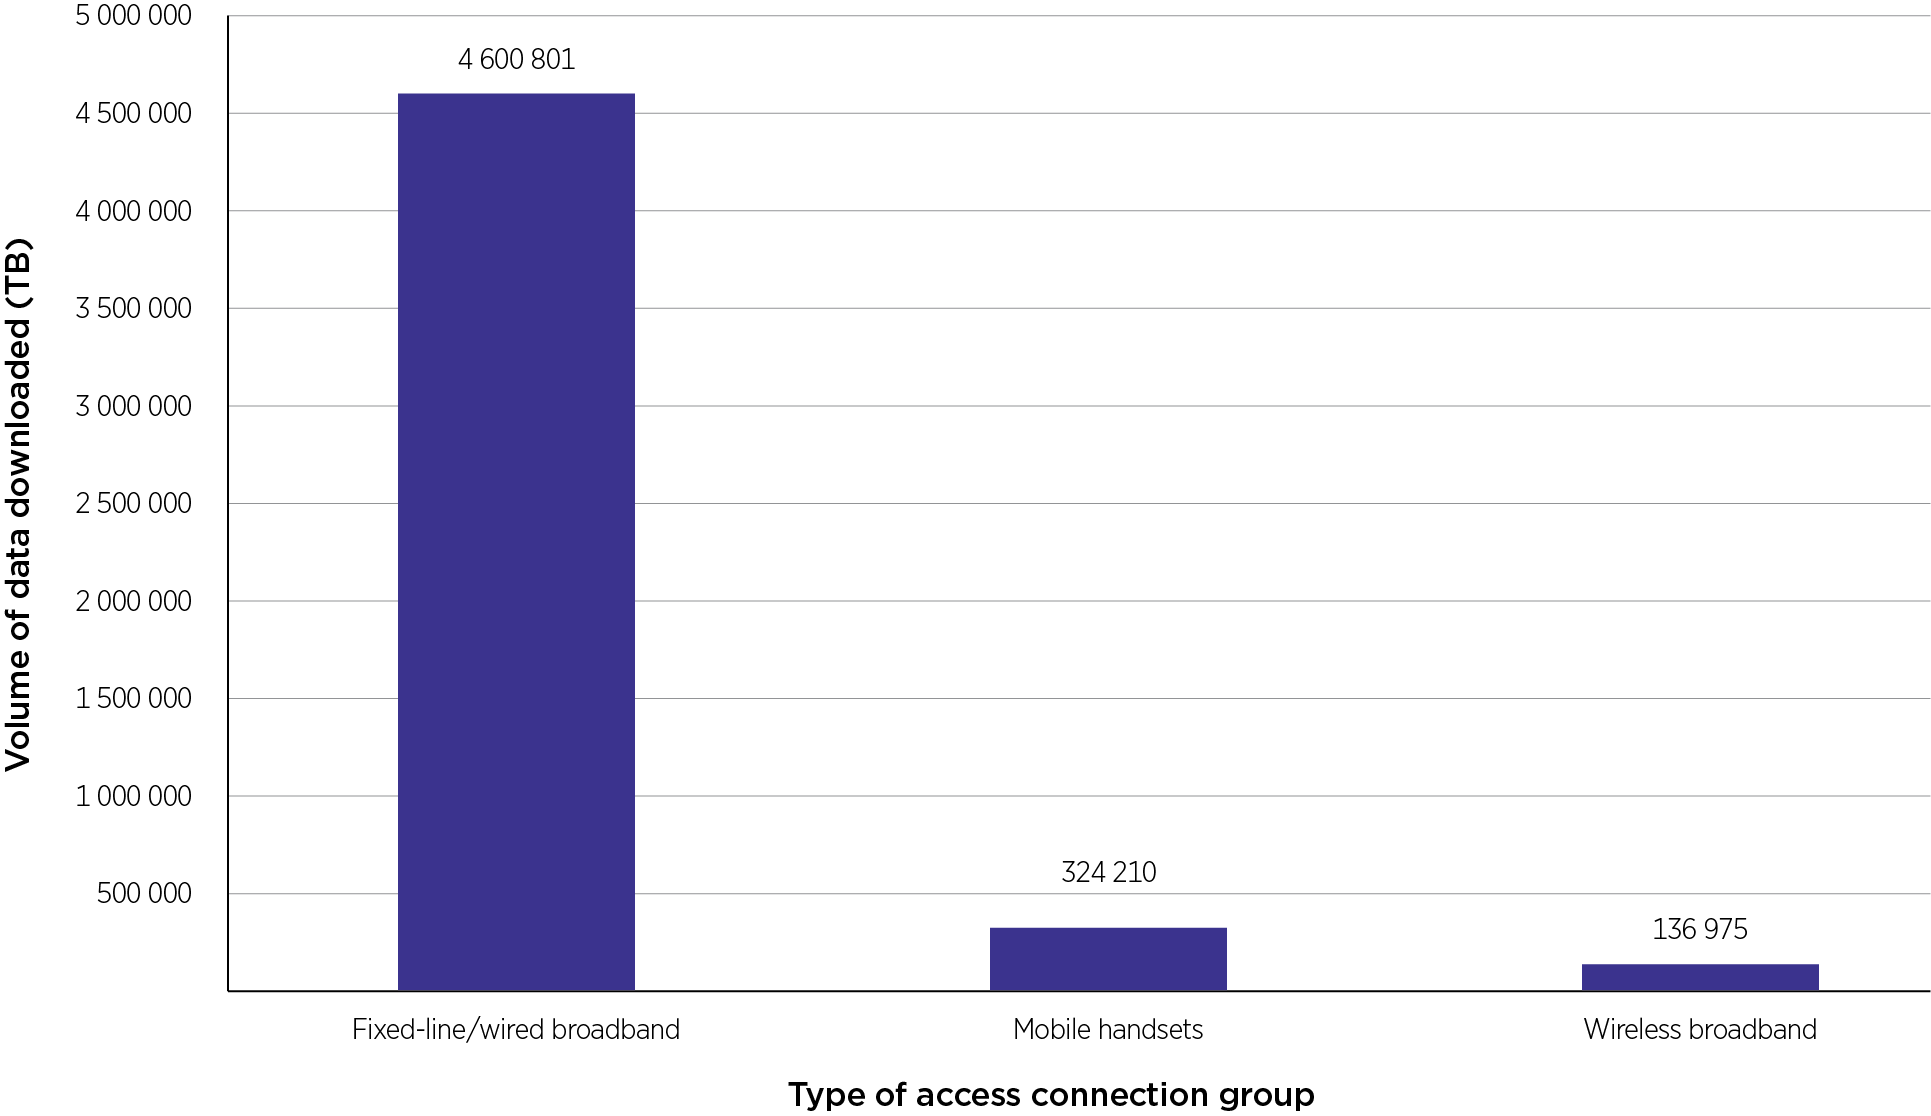 Volume of data downloaded by type of access connection group